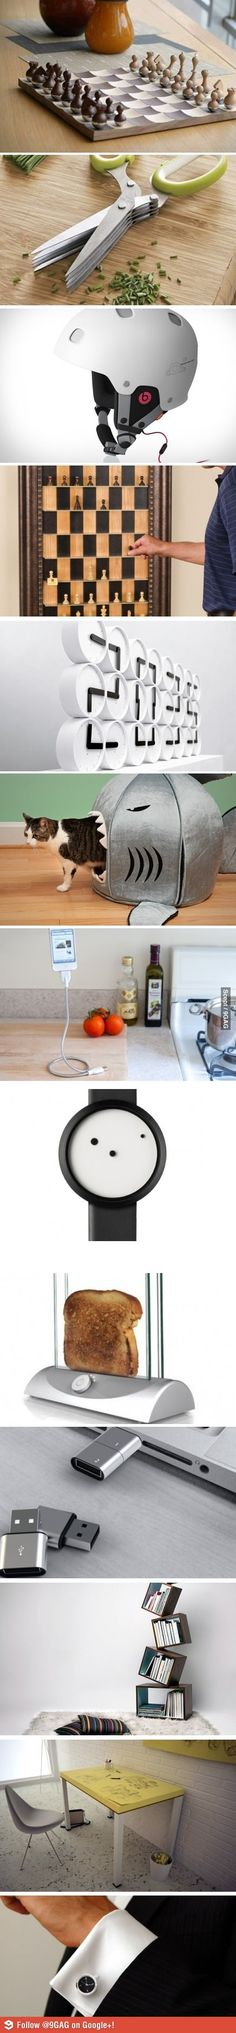 Great new inventions